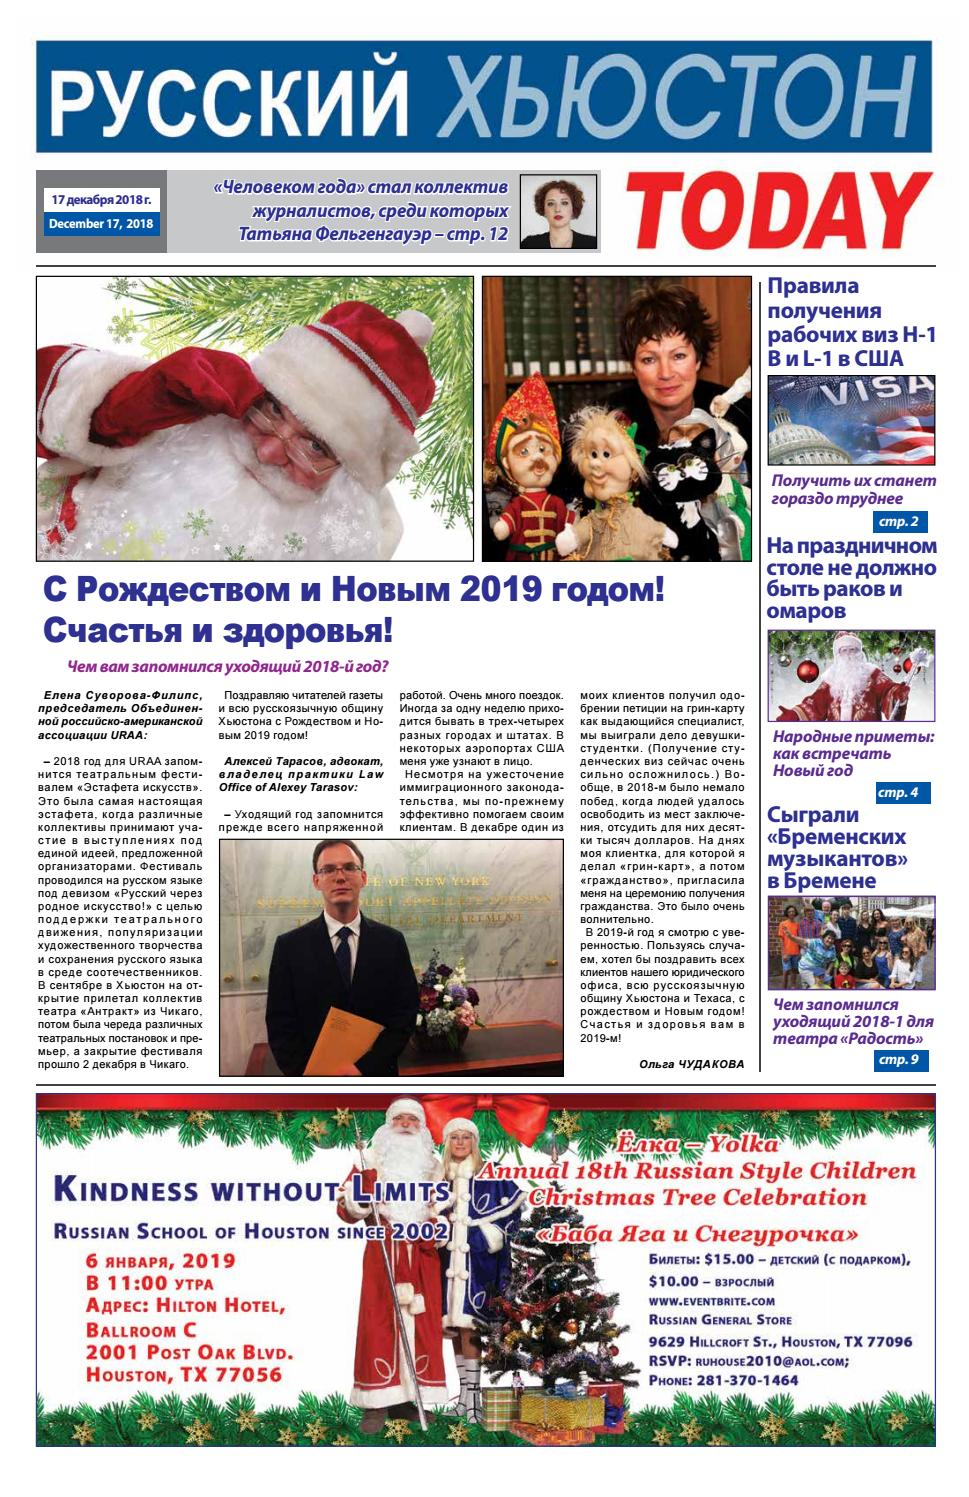 1a5271ac2bc21 Russian Houston Today - December 17, 2018 by Русский Хьюстон Today - issuu